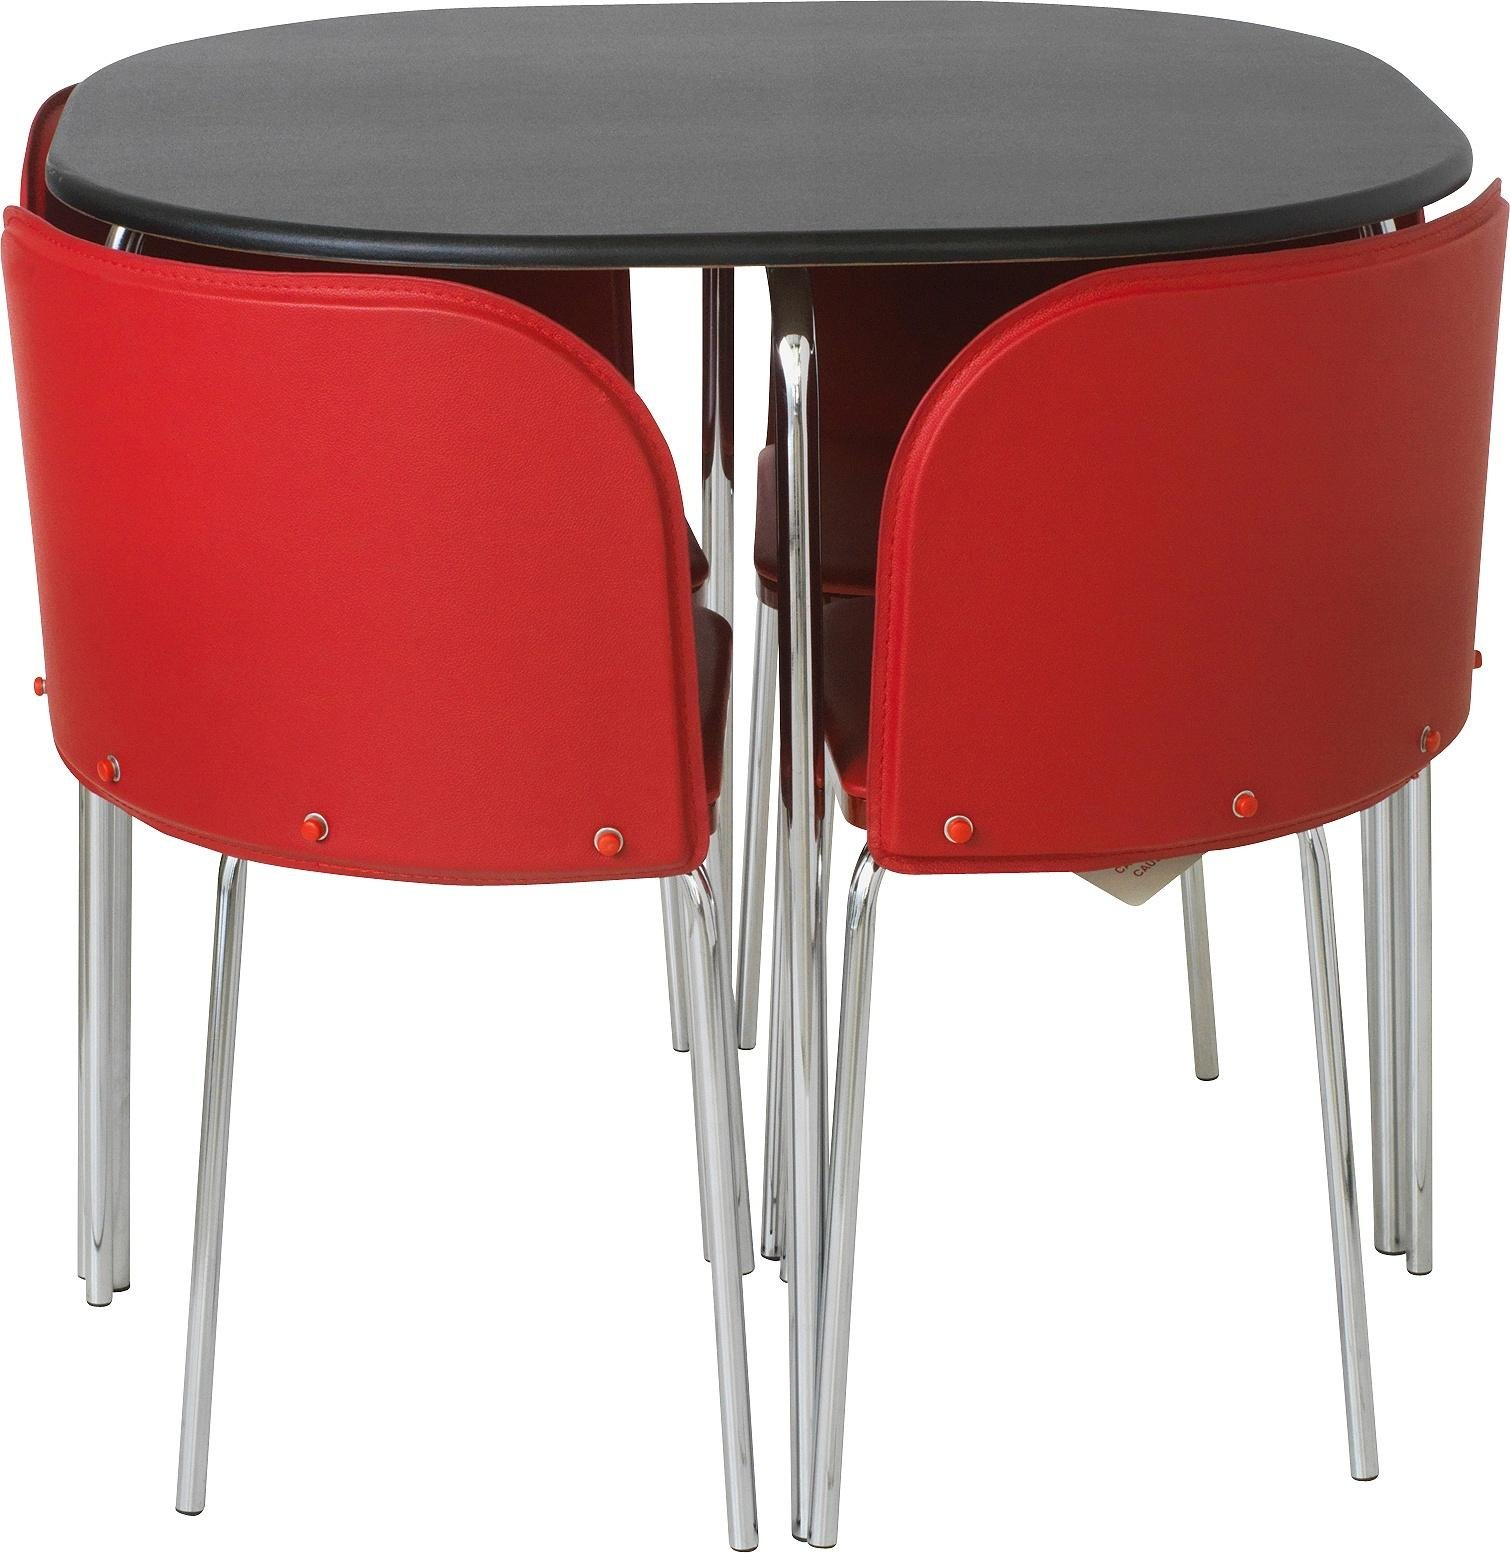 pads under chair legs hello kitty spa pedicure hygena amparo black dining table and 4 chairs red 139